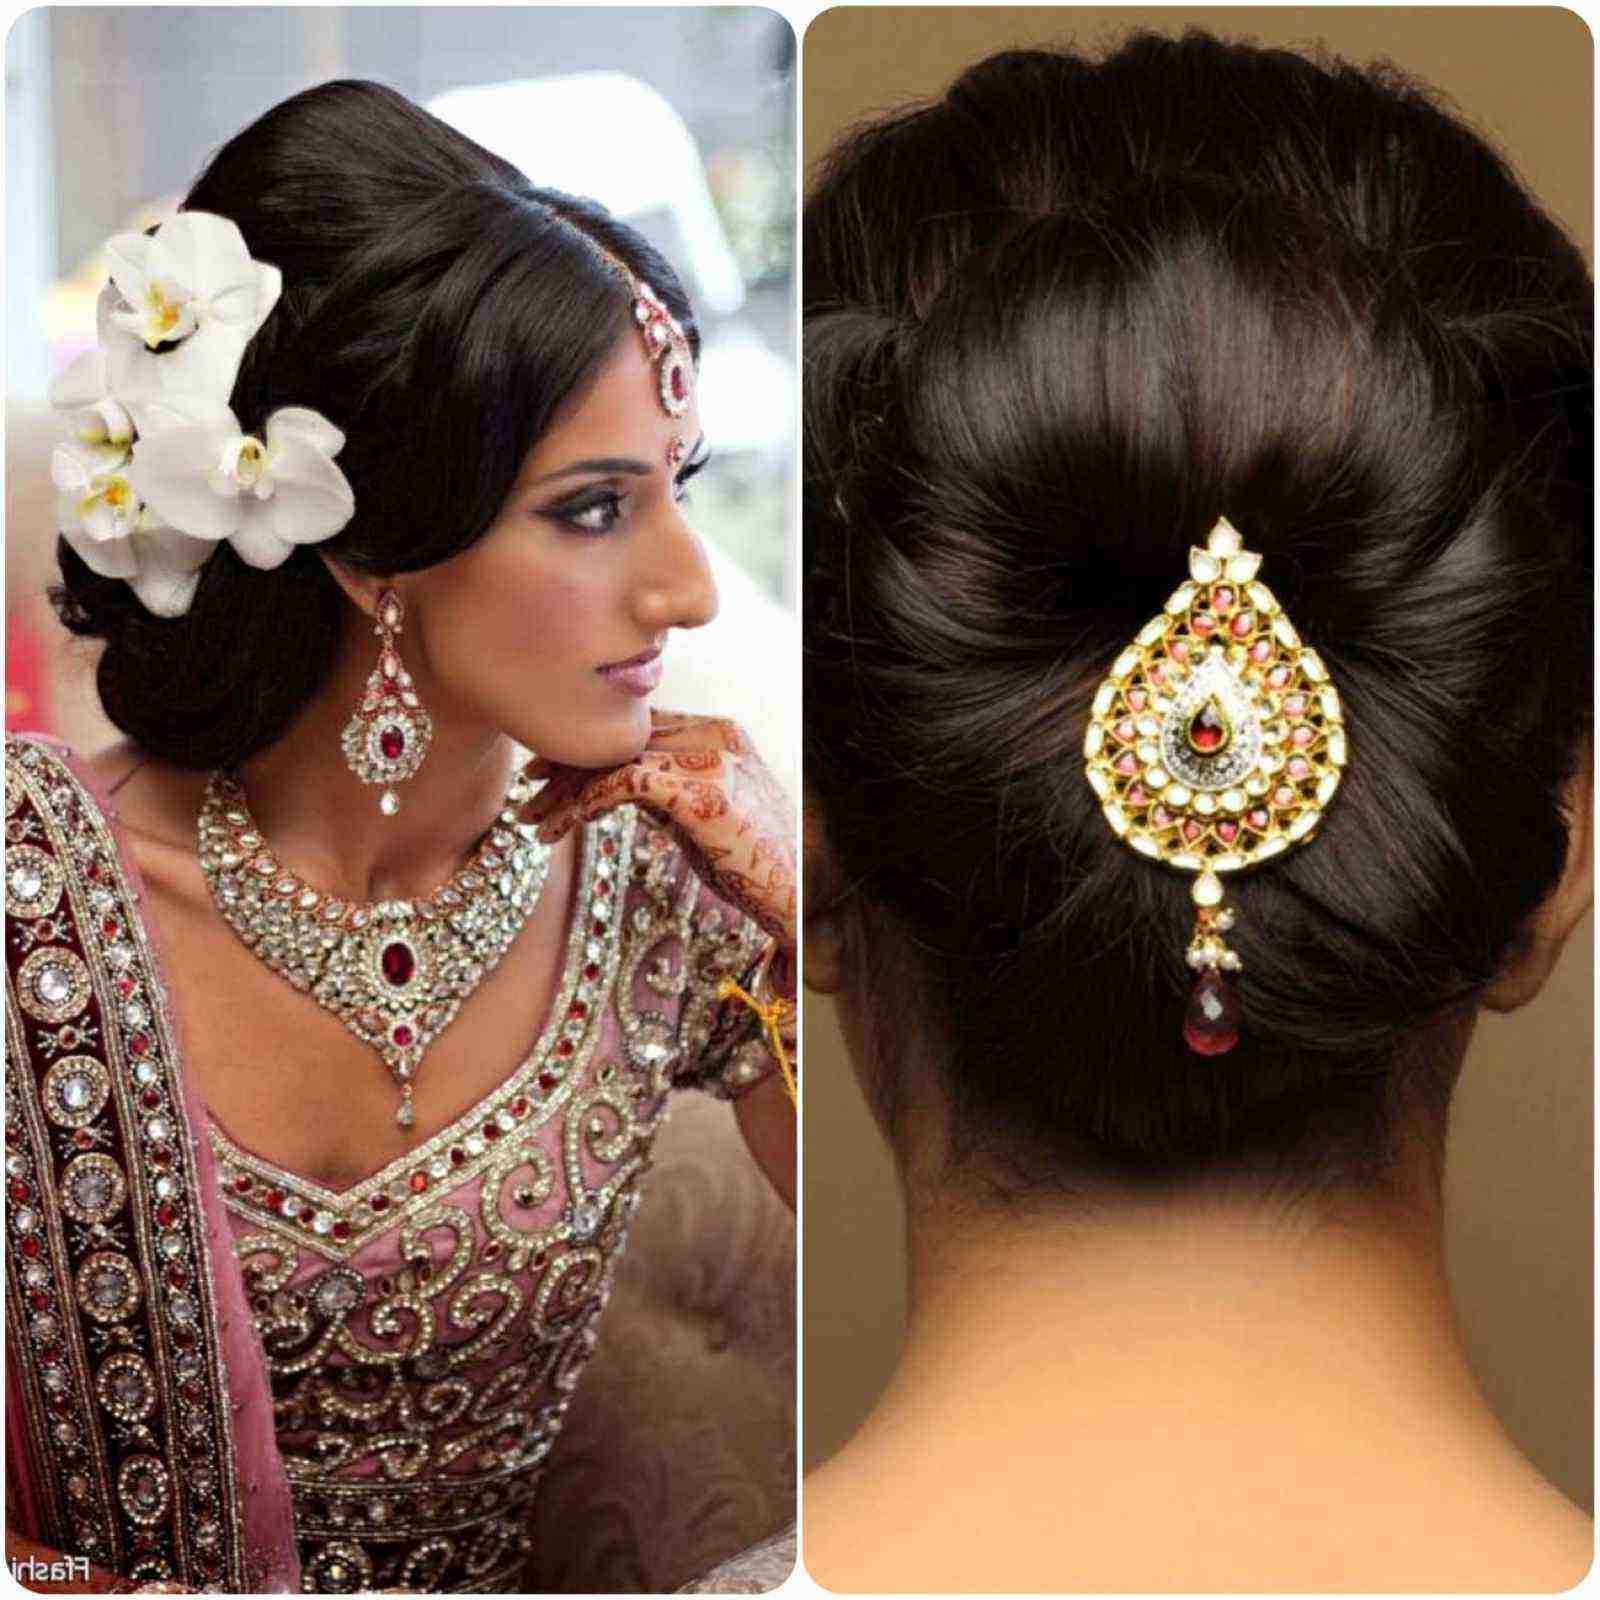 Indian Hairstyles For Short Hair Best Of Indian Wedding Hairstyles Inside 2018 Wedding Hairstyles For Short Hair And Round Face (View 3 of 15)